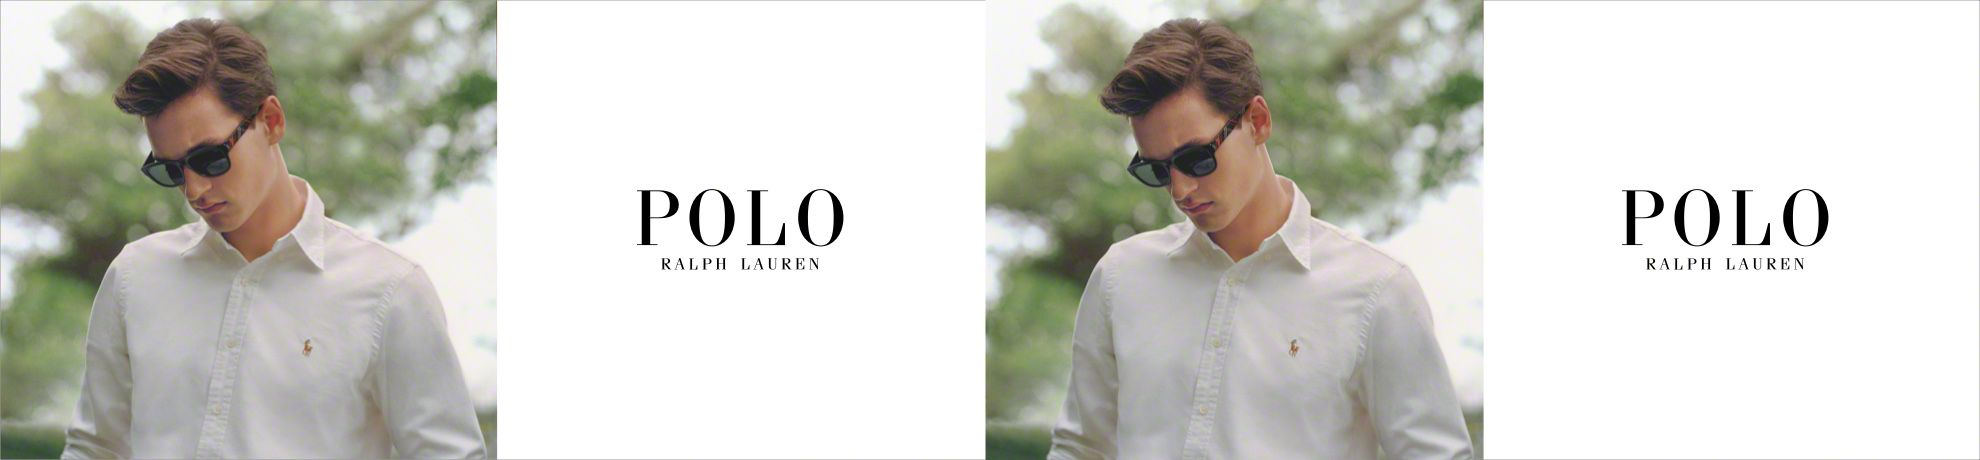 Polo Ralph Lauren eyewear